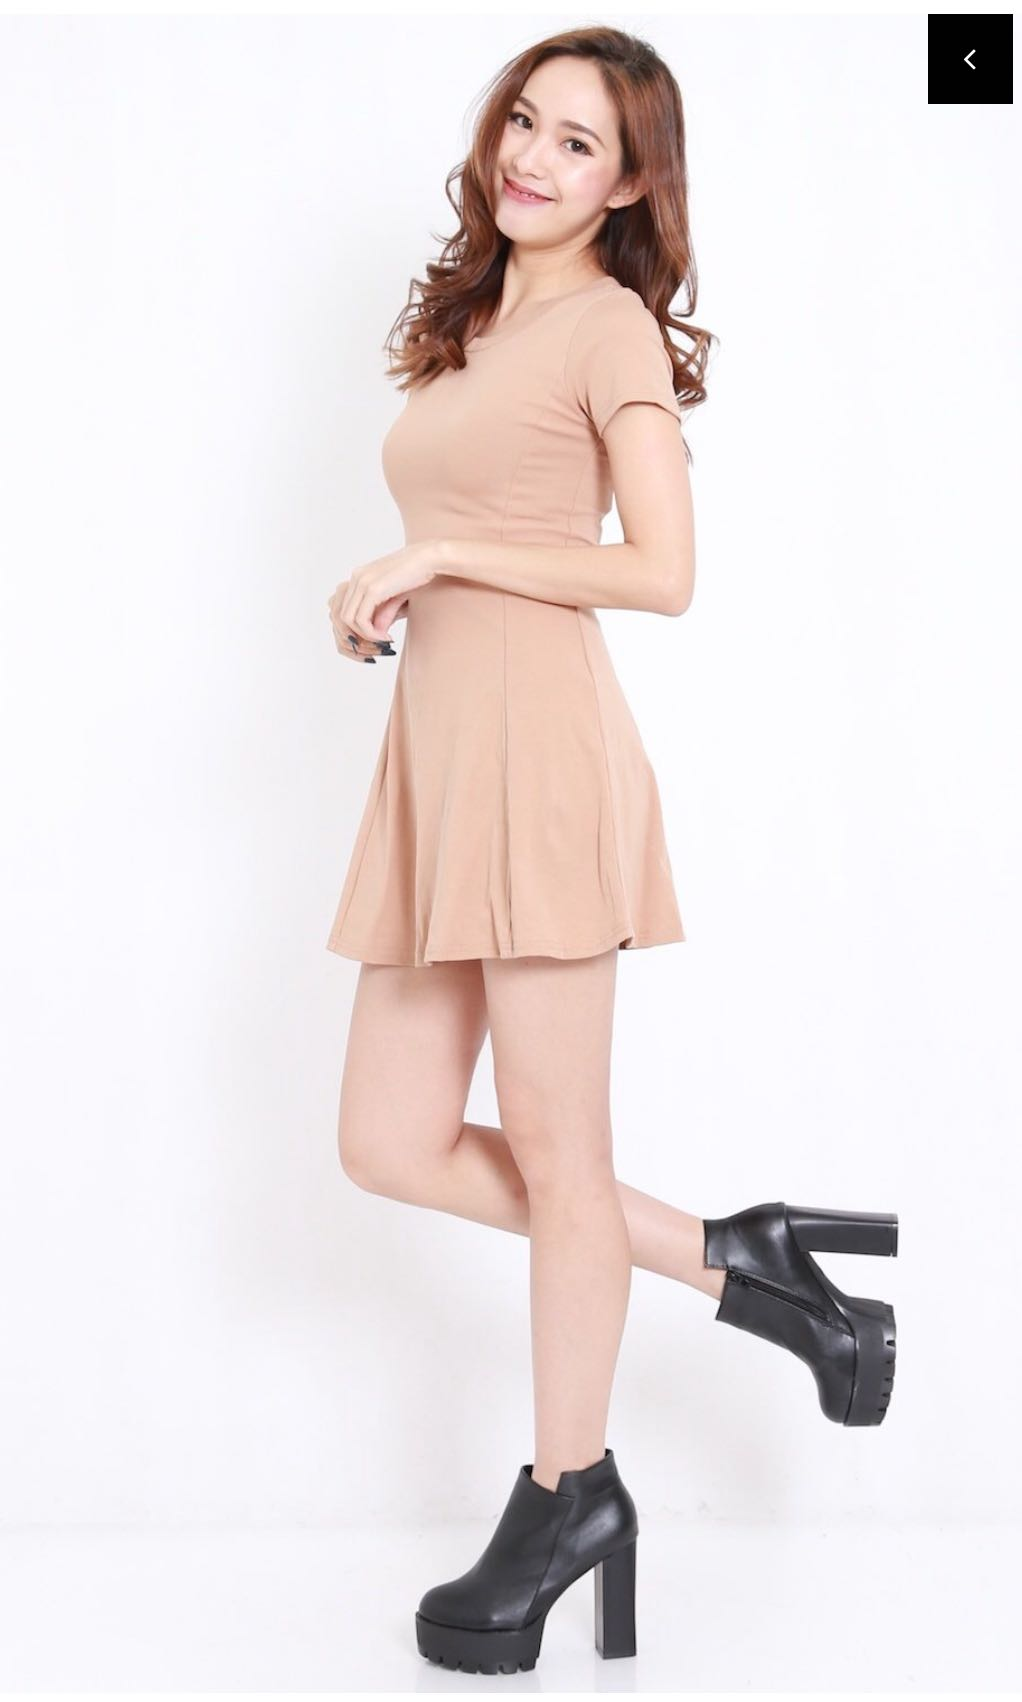 feebb89bf Fitted Skater Dress (nude), Women's Fashion, Clothes, Dresses ...